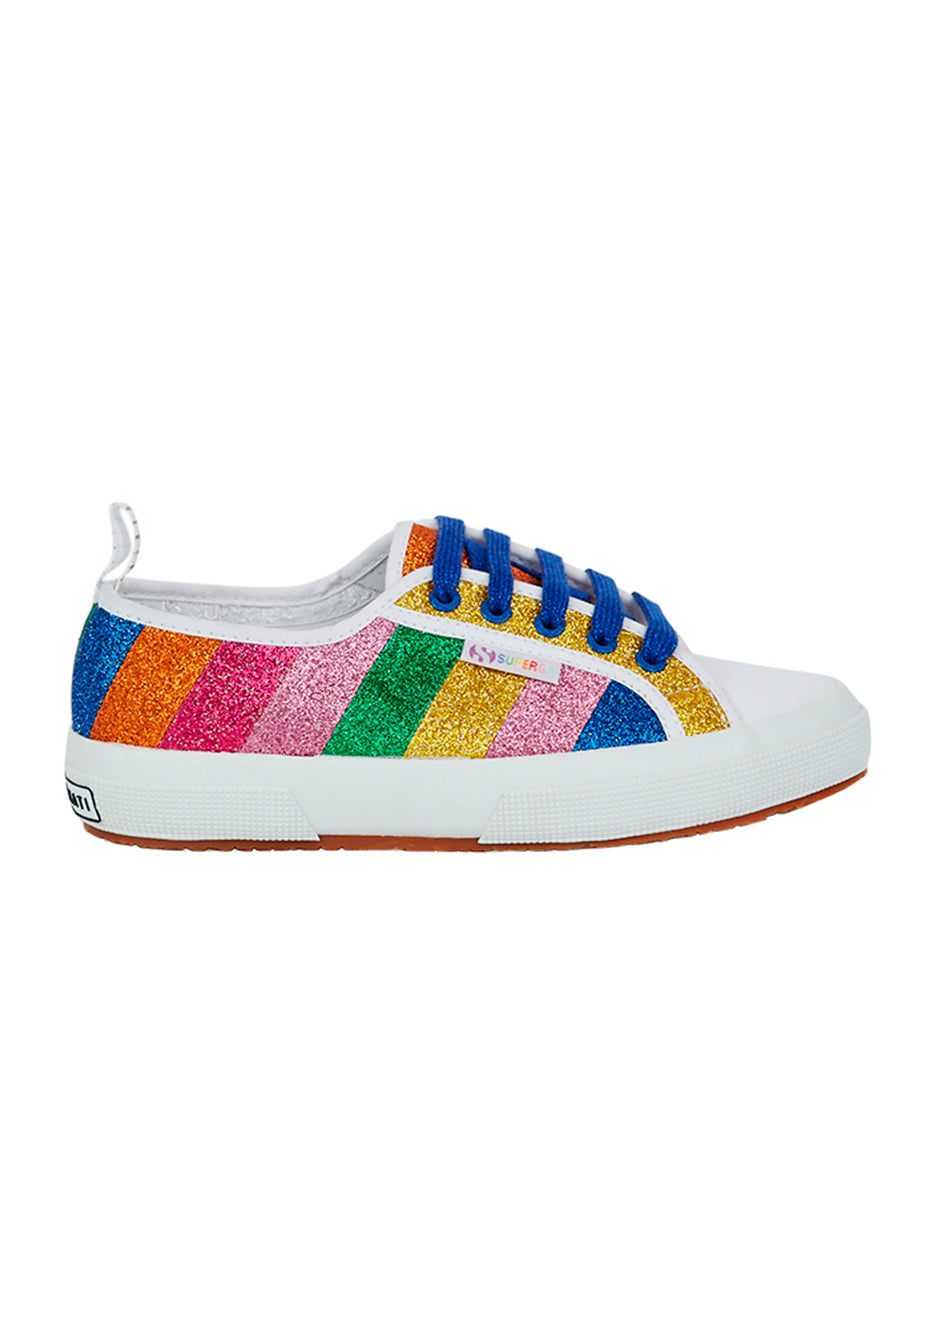 Superga Stripe Glitter Sneakers